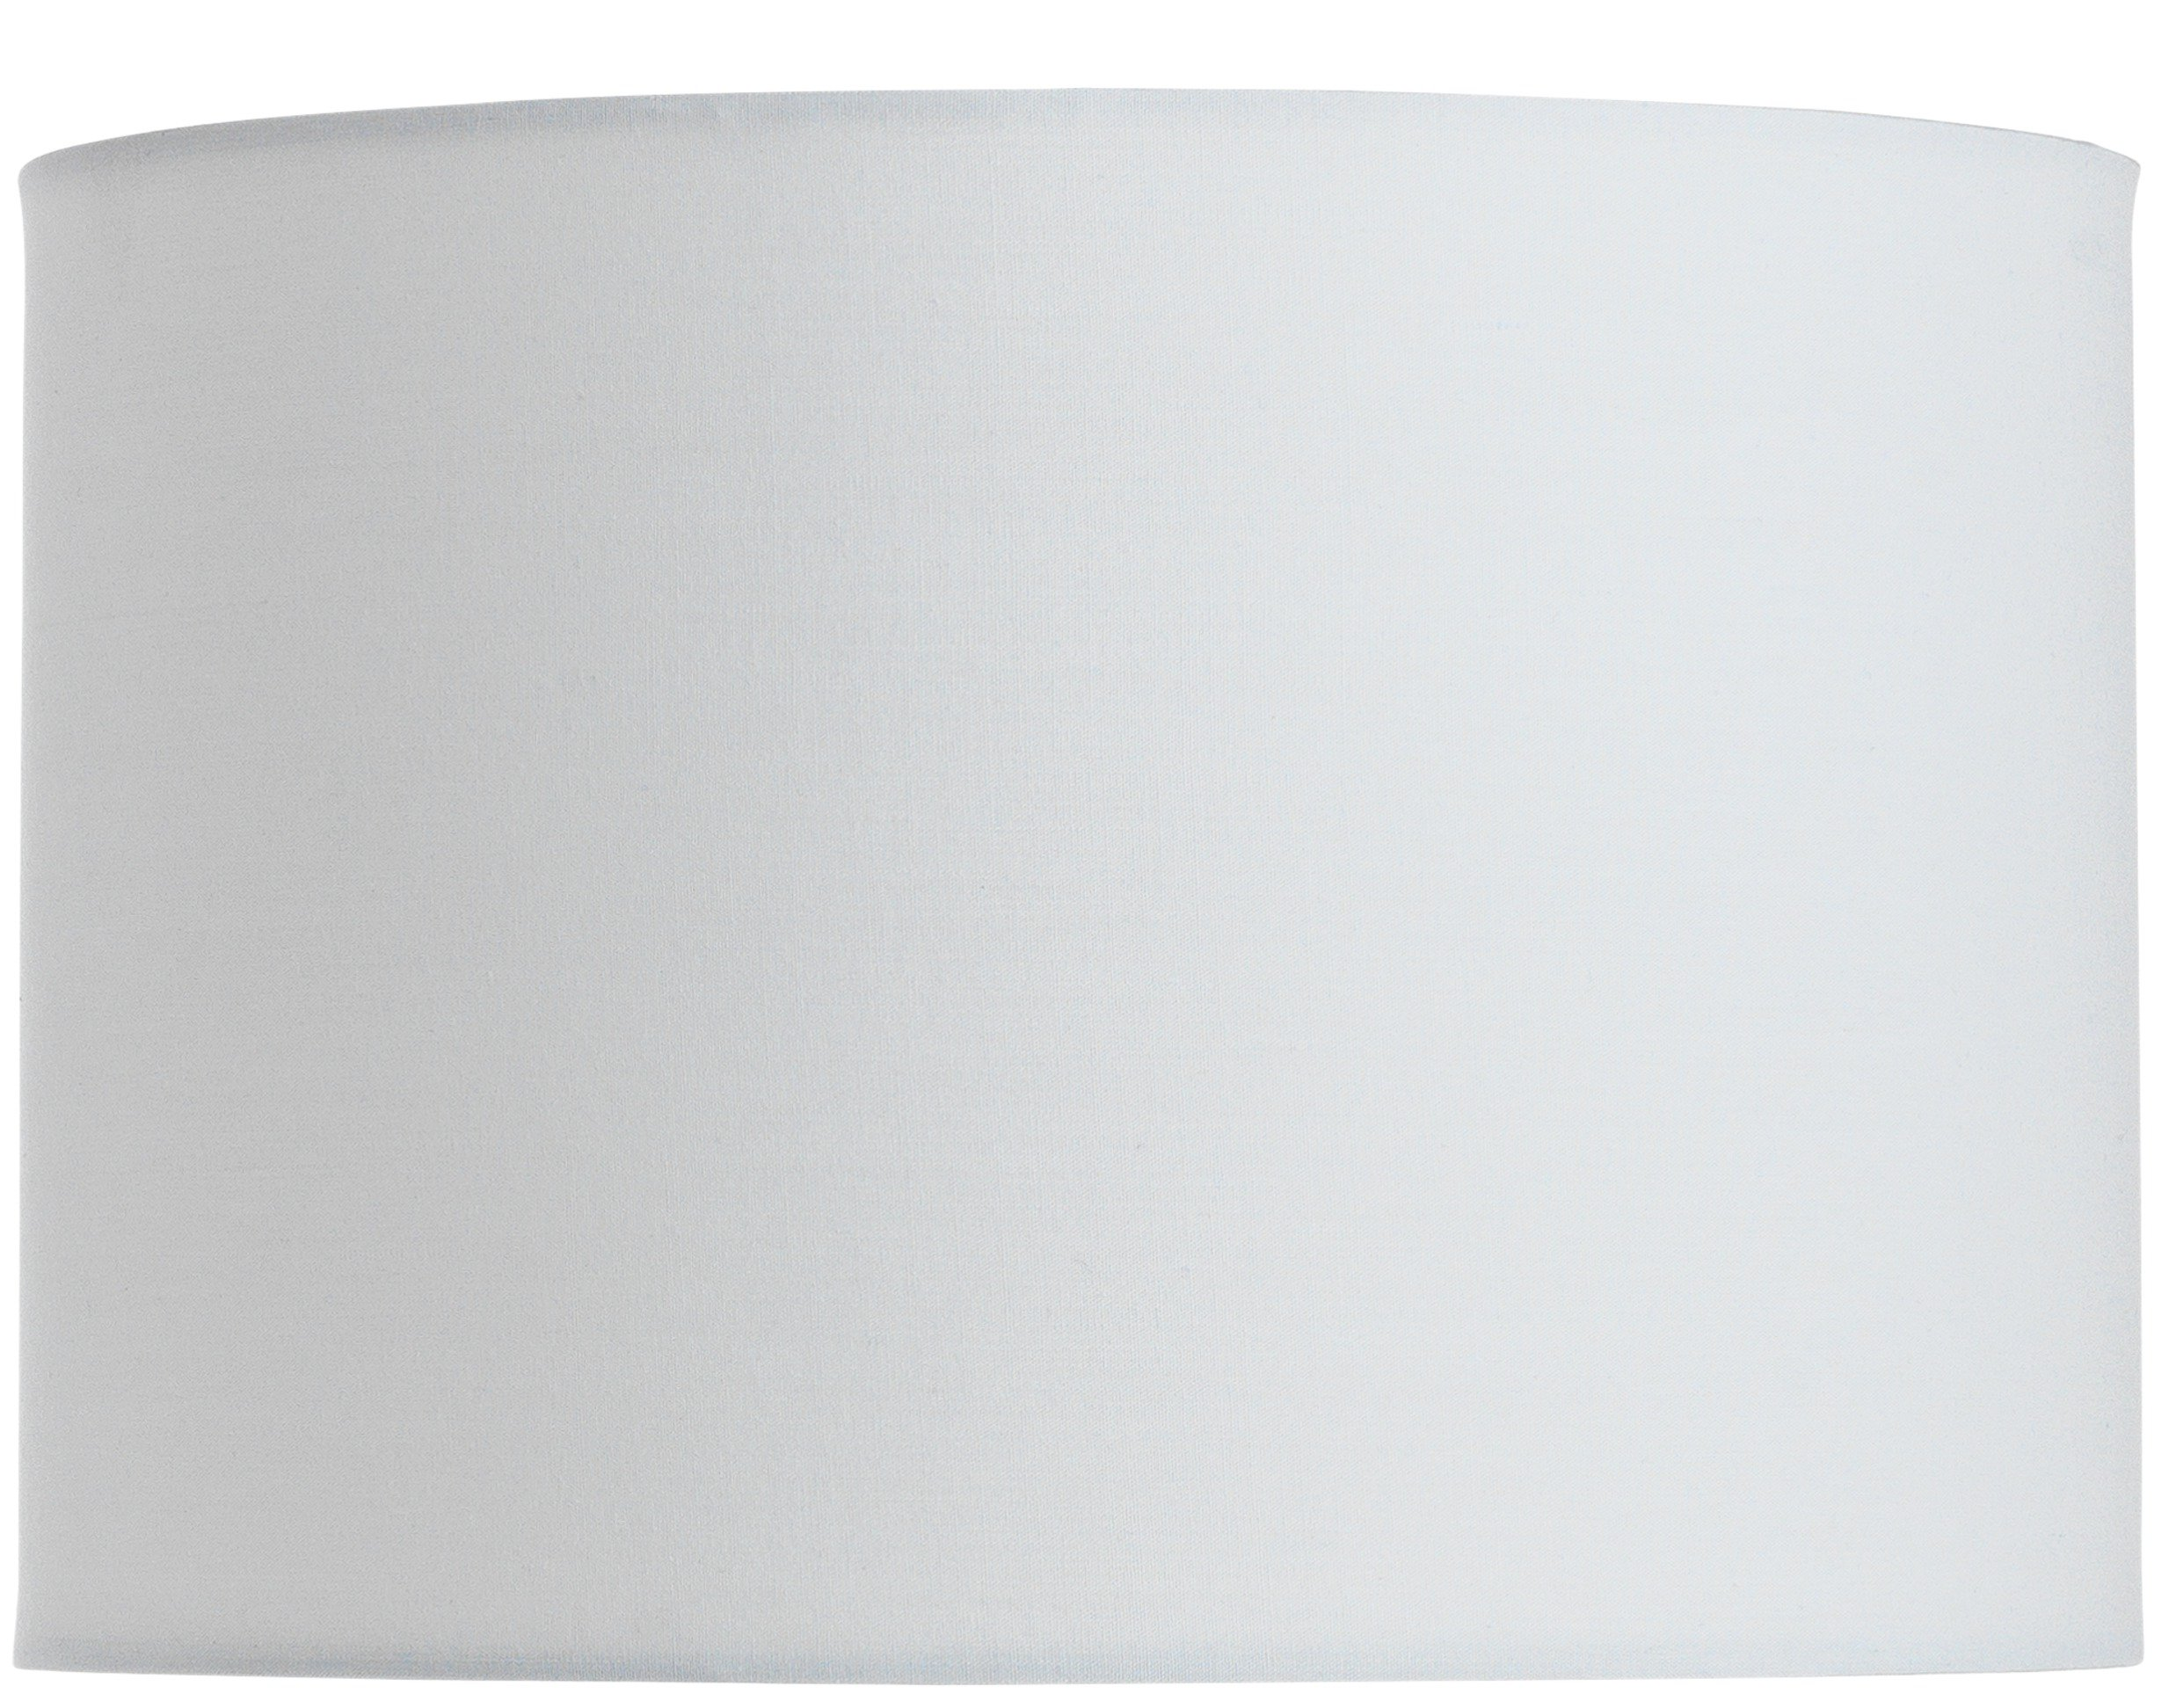 Argos Home Drum Light Shade - Super White